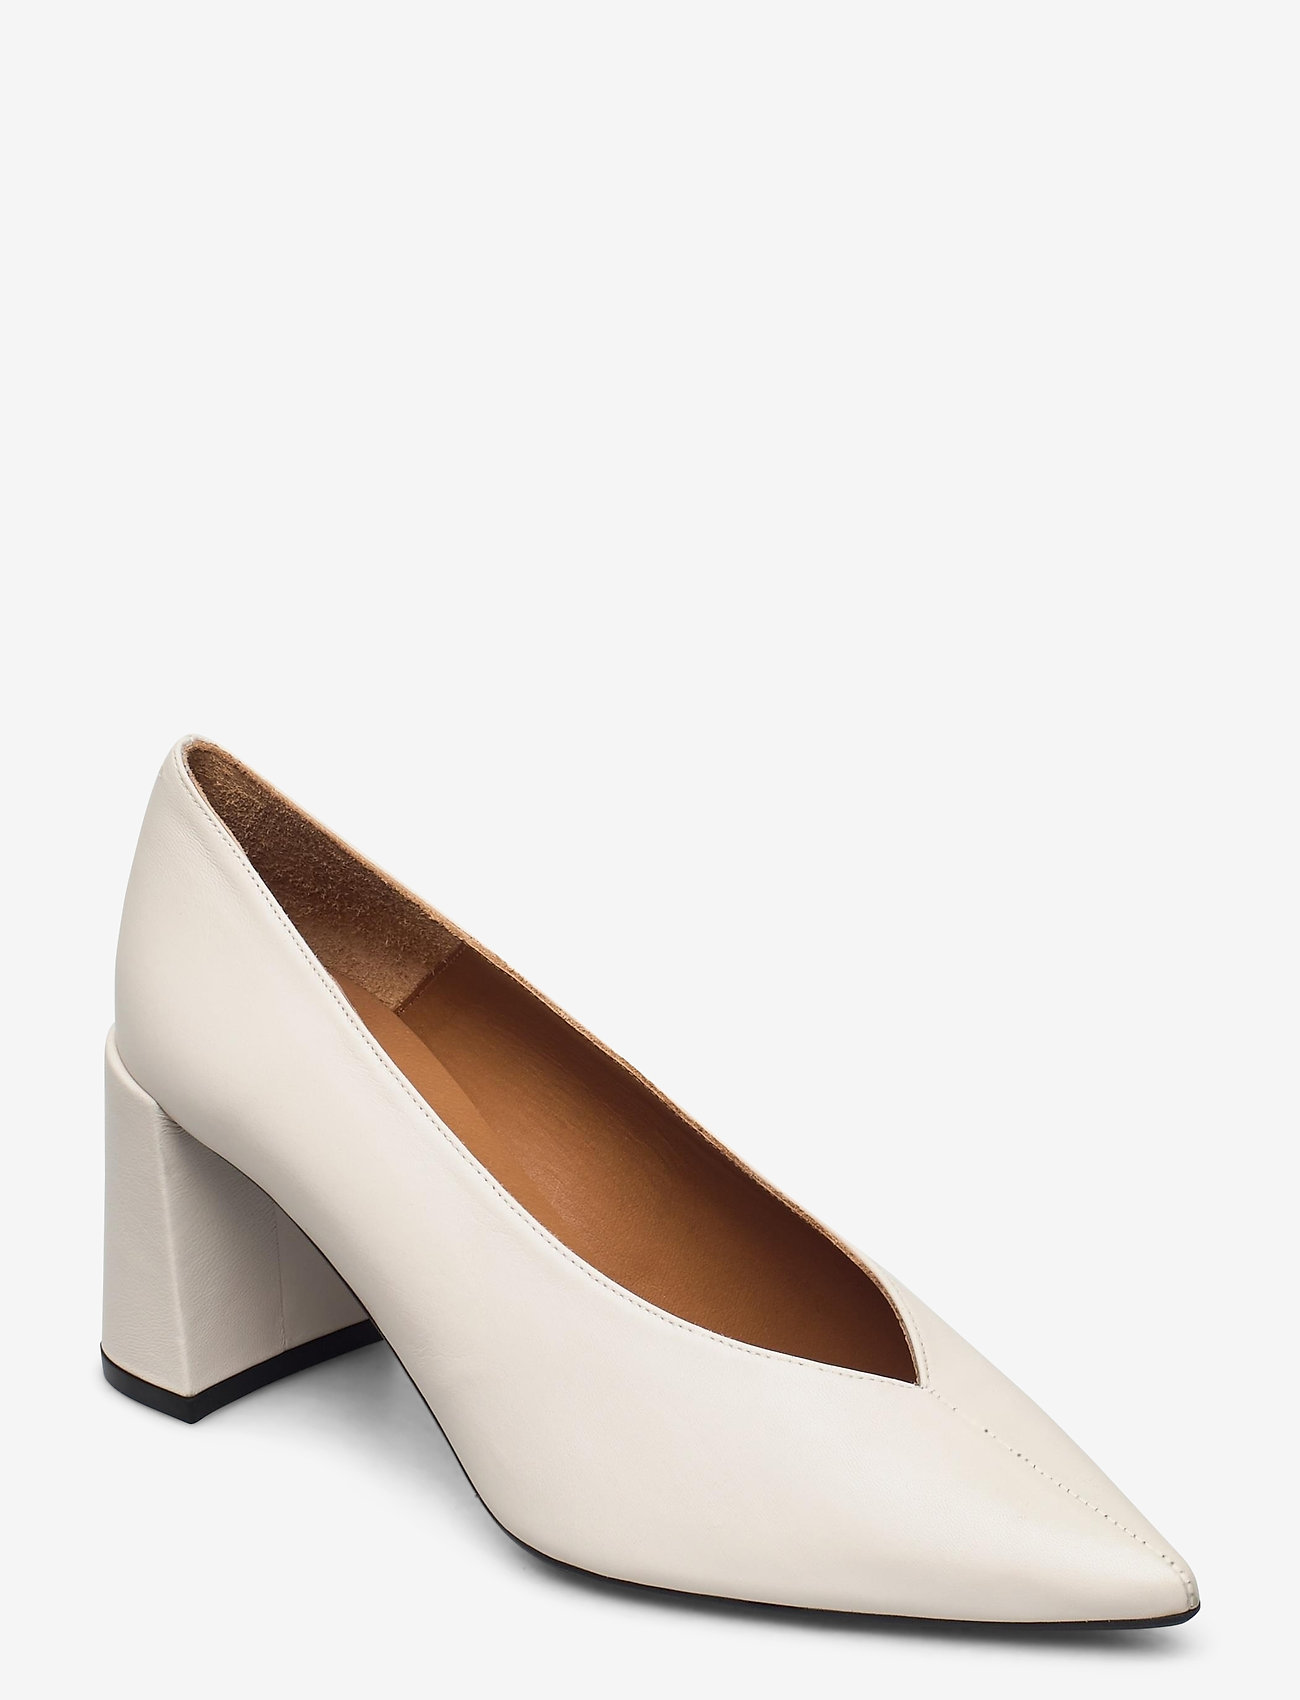 Billi Bi - Pumps 5061 - classic pumps - white 2582 nappa 73 - 0